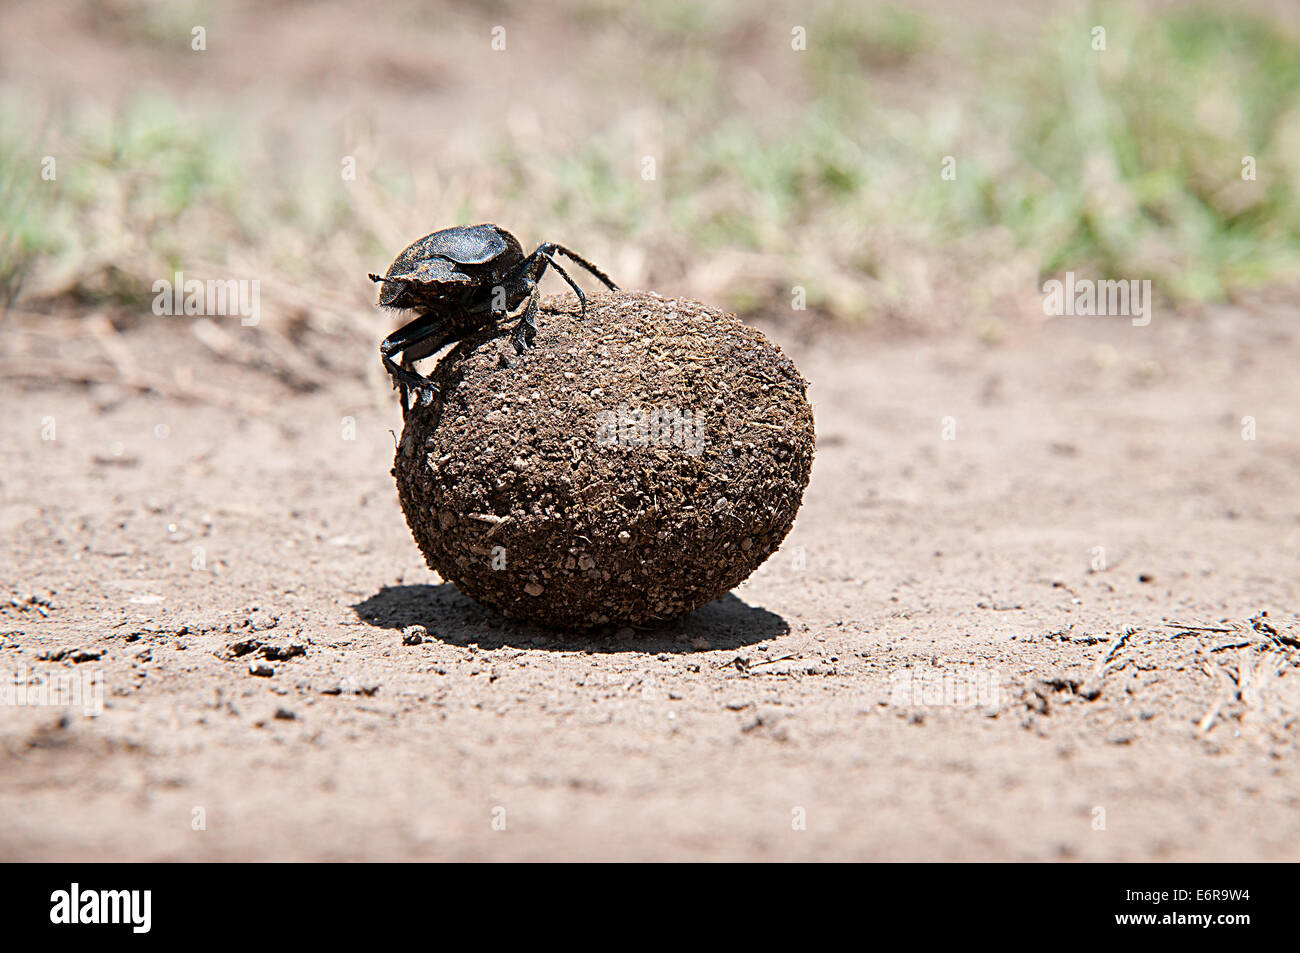 Dung beetle rolling ball of dung faeces in Lake Nakuru National Park Kenya East Africa - Stock Image